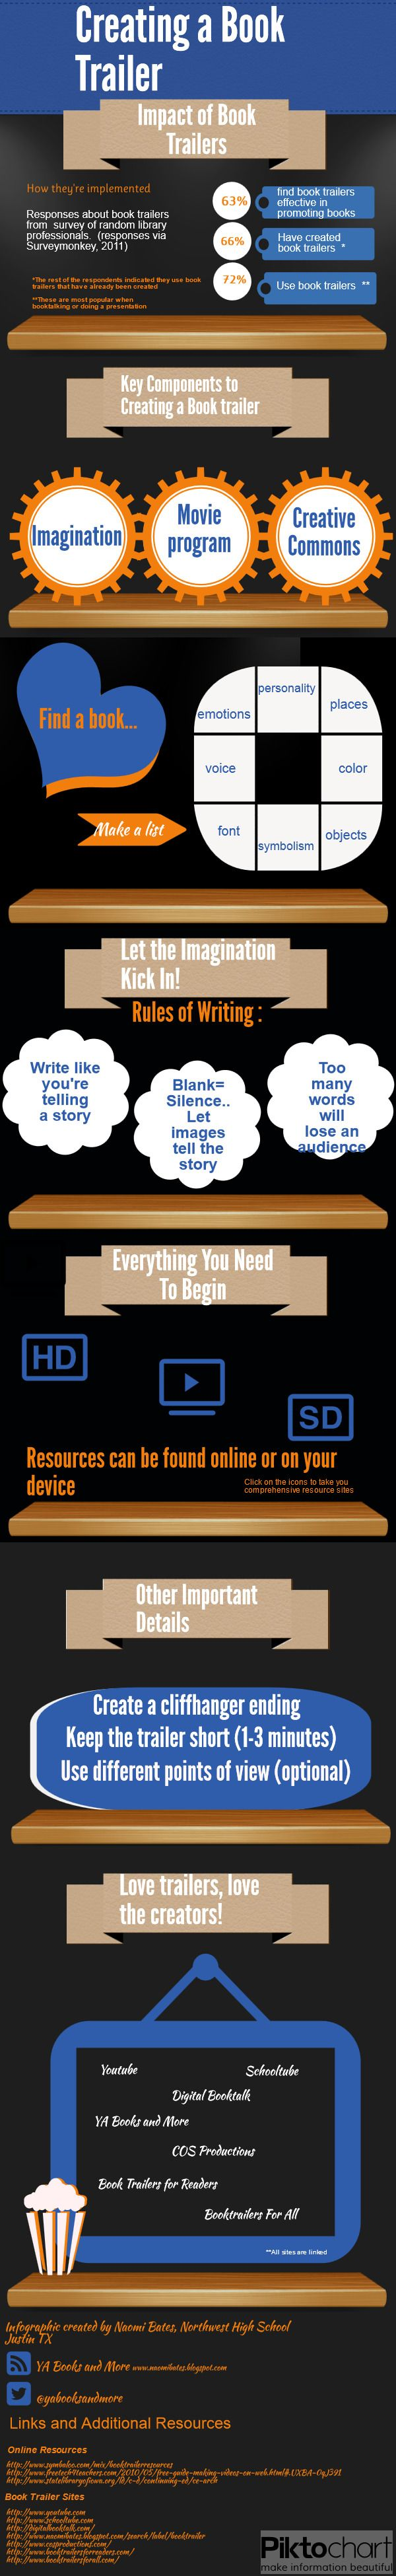 How To Make A Book Trailer On Imovie ~ Best high school library ideas images on pinterest